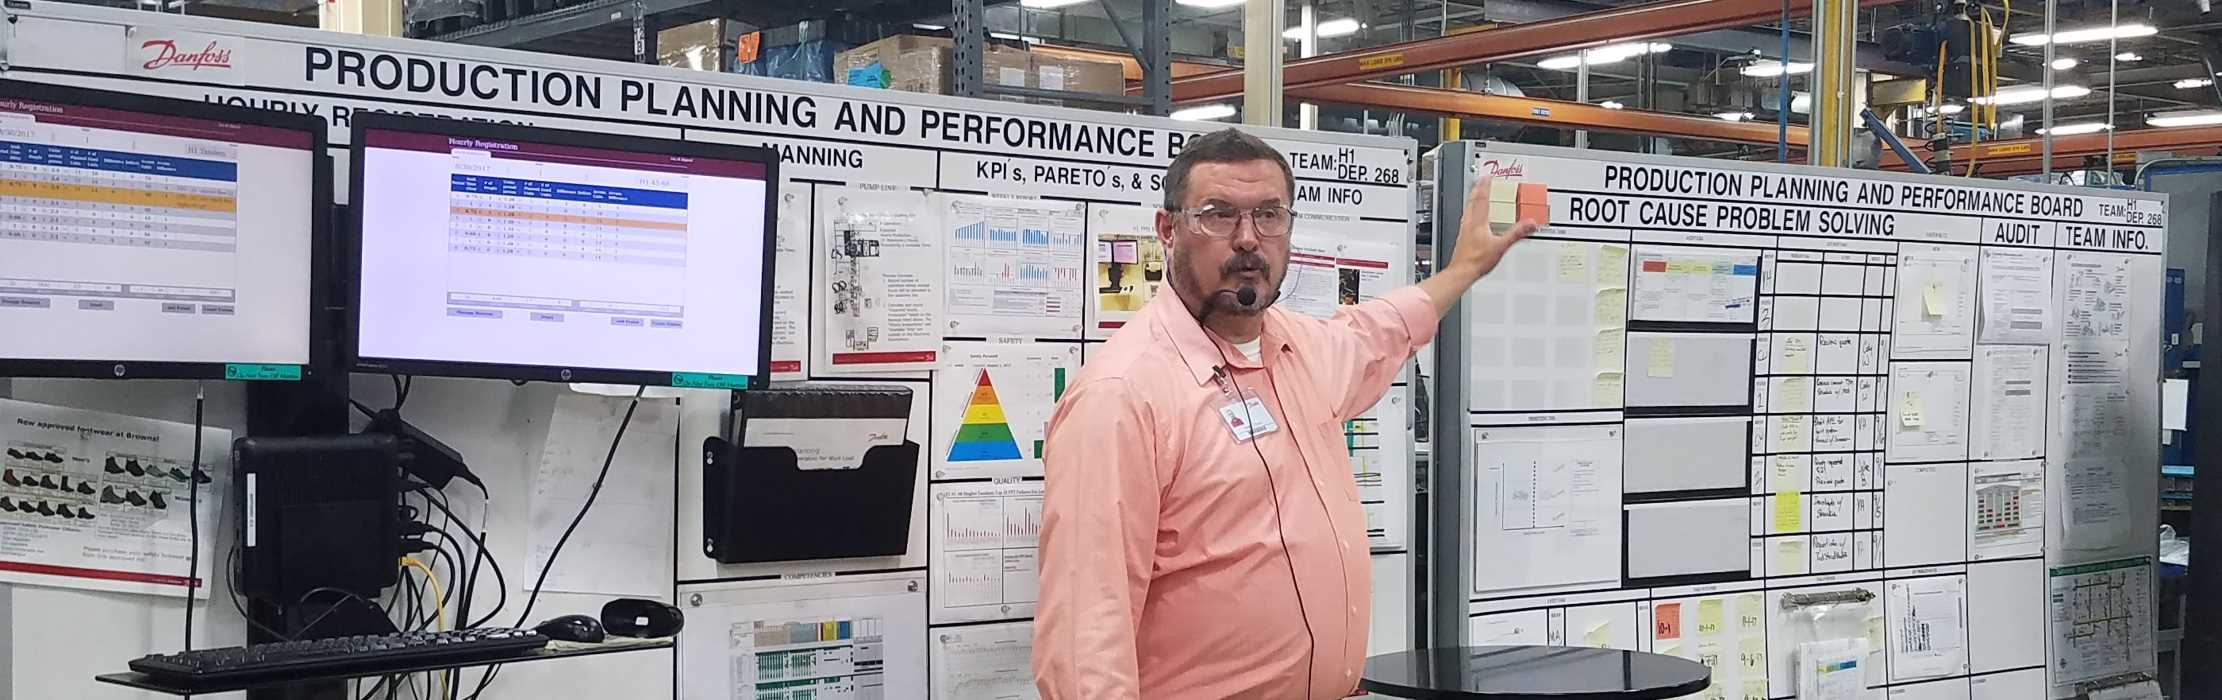 Trainer discussing productivity tools at an event in a manufacturing company.